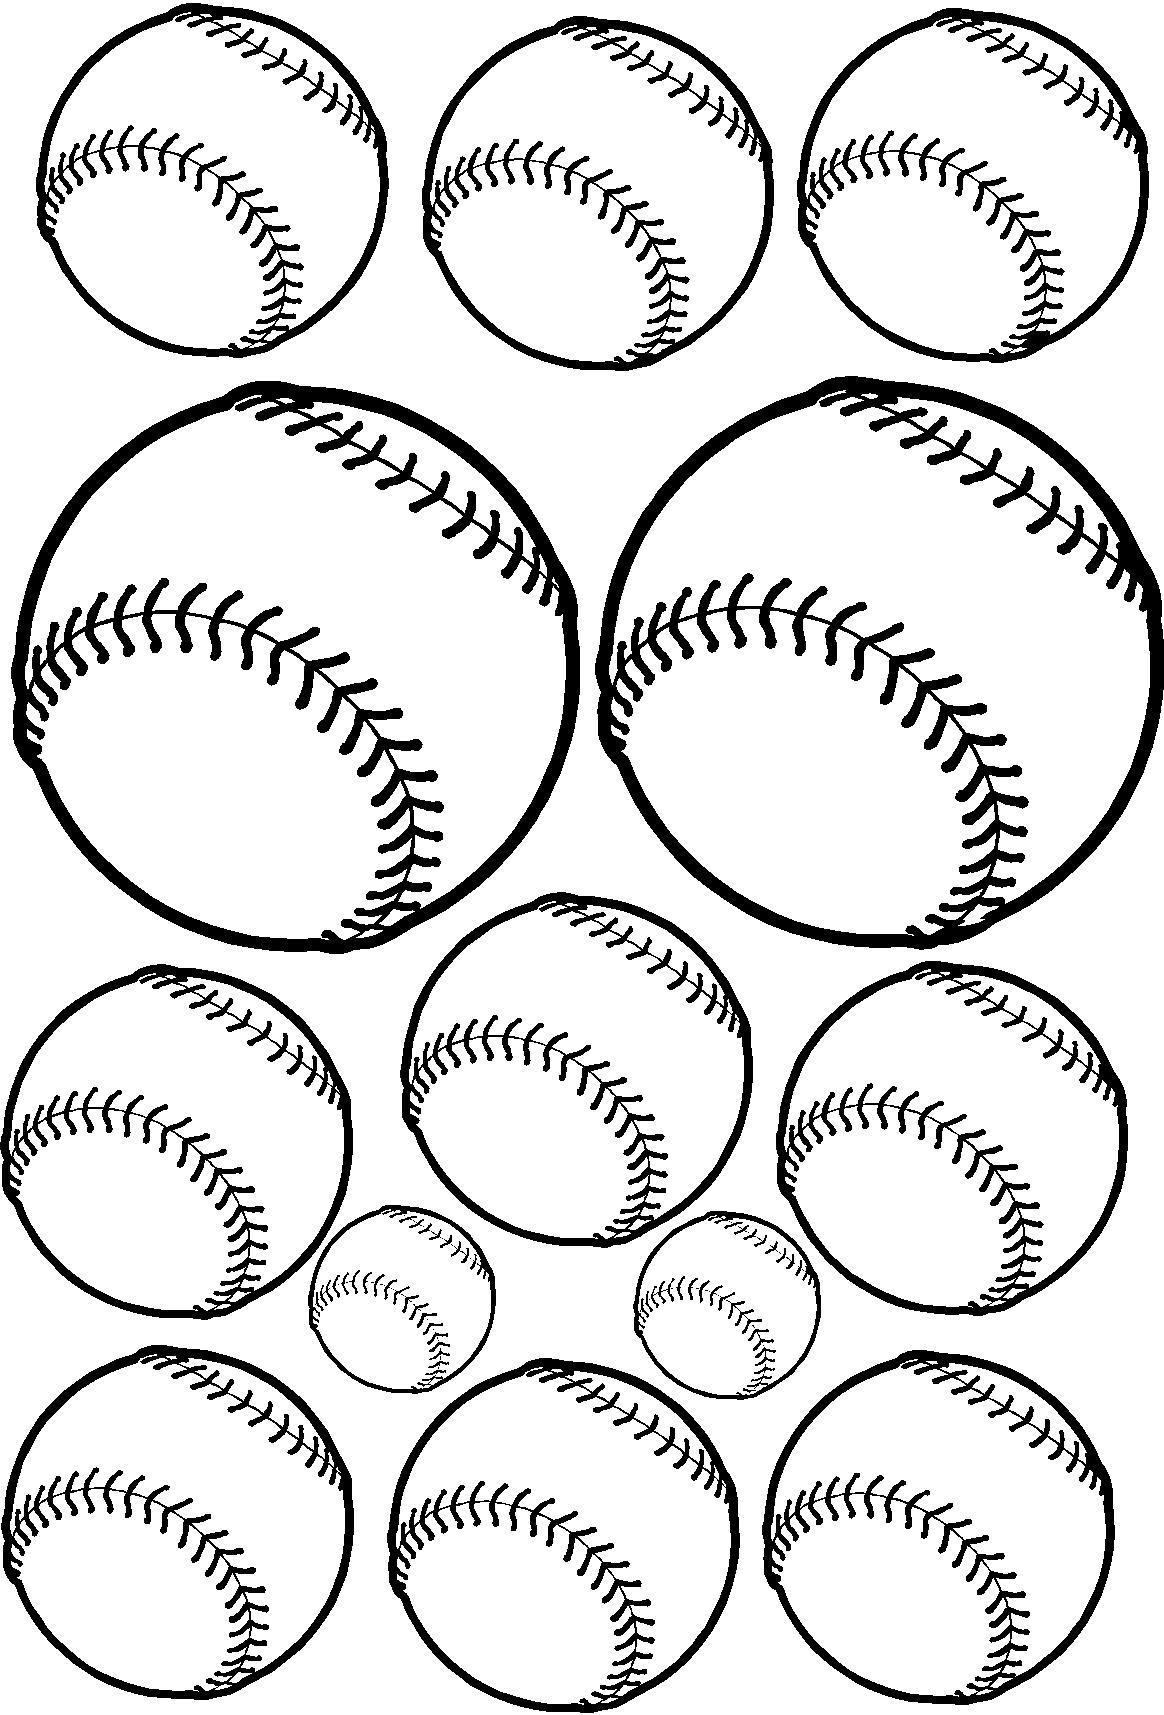 Baseball Wall Sayings Stickers Vinyl Decals